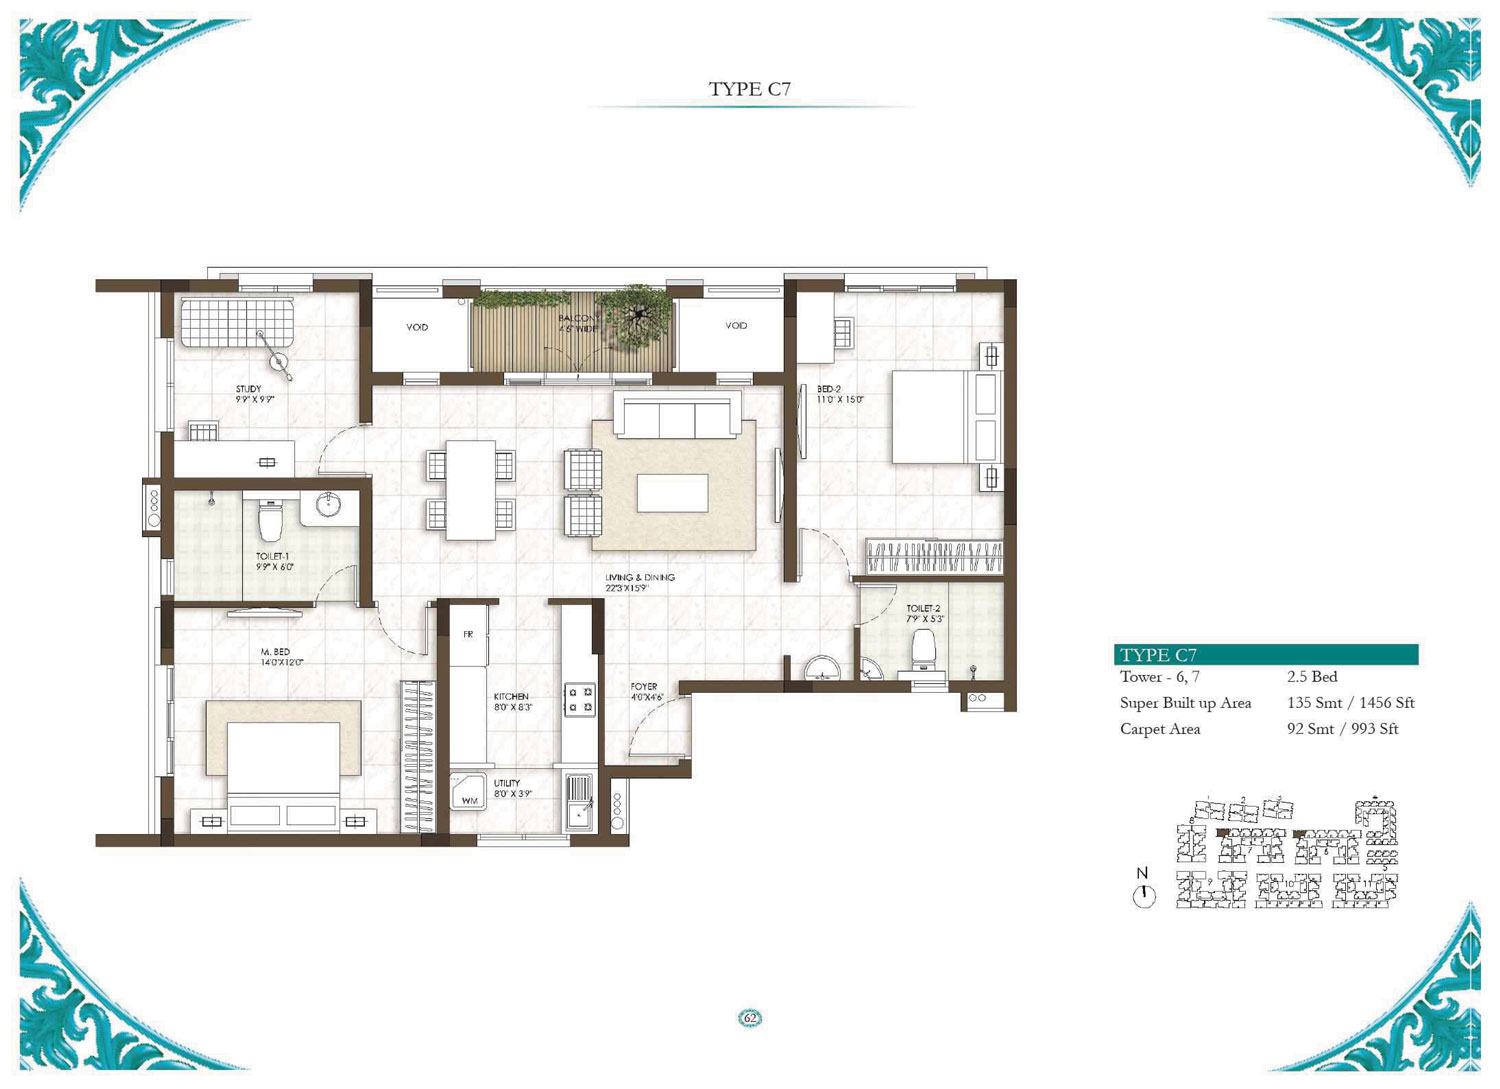 Type C7 - 2.5 Bed - 1456 Sq Ft